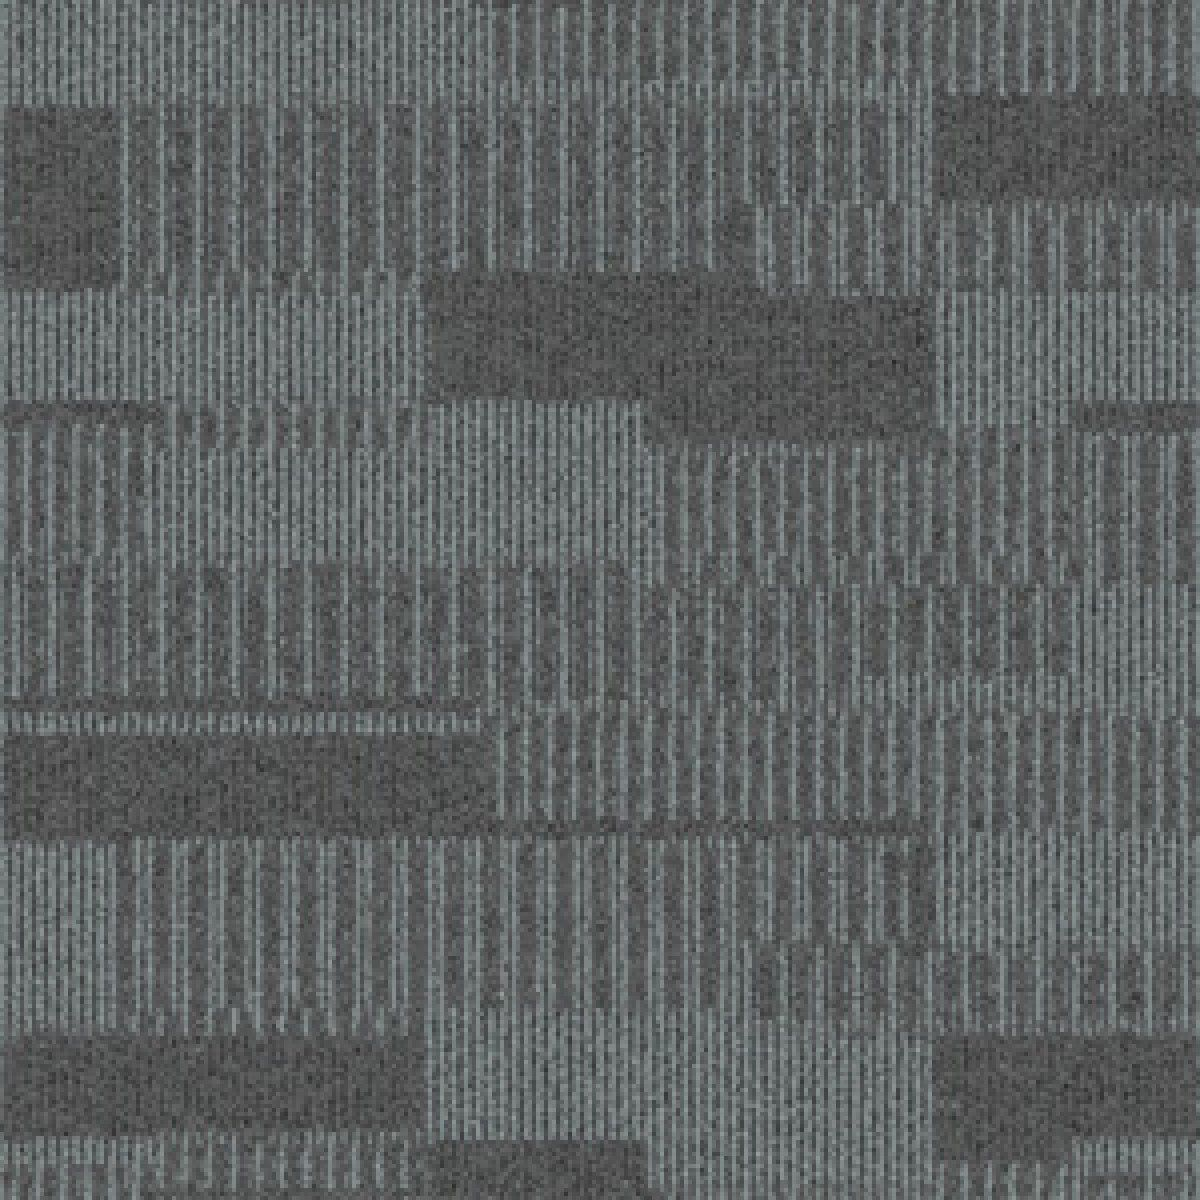 Commercial Office Carpet | InterfaceFLOR Duet Carpet Tiles Colour Shadow  Grey .* JUST £24.75